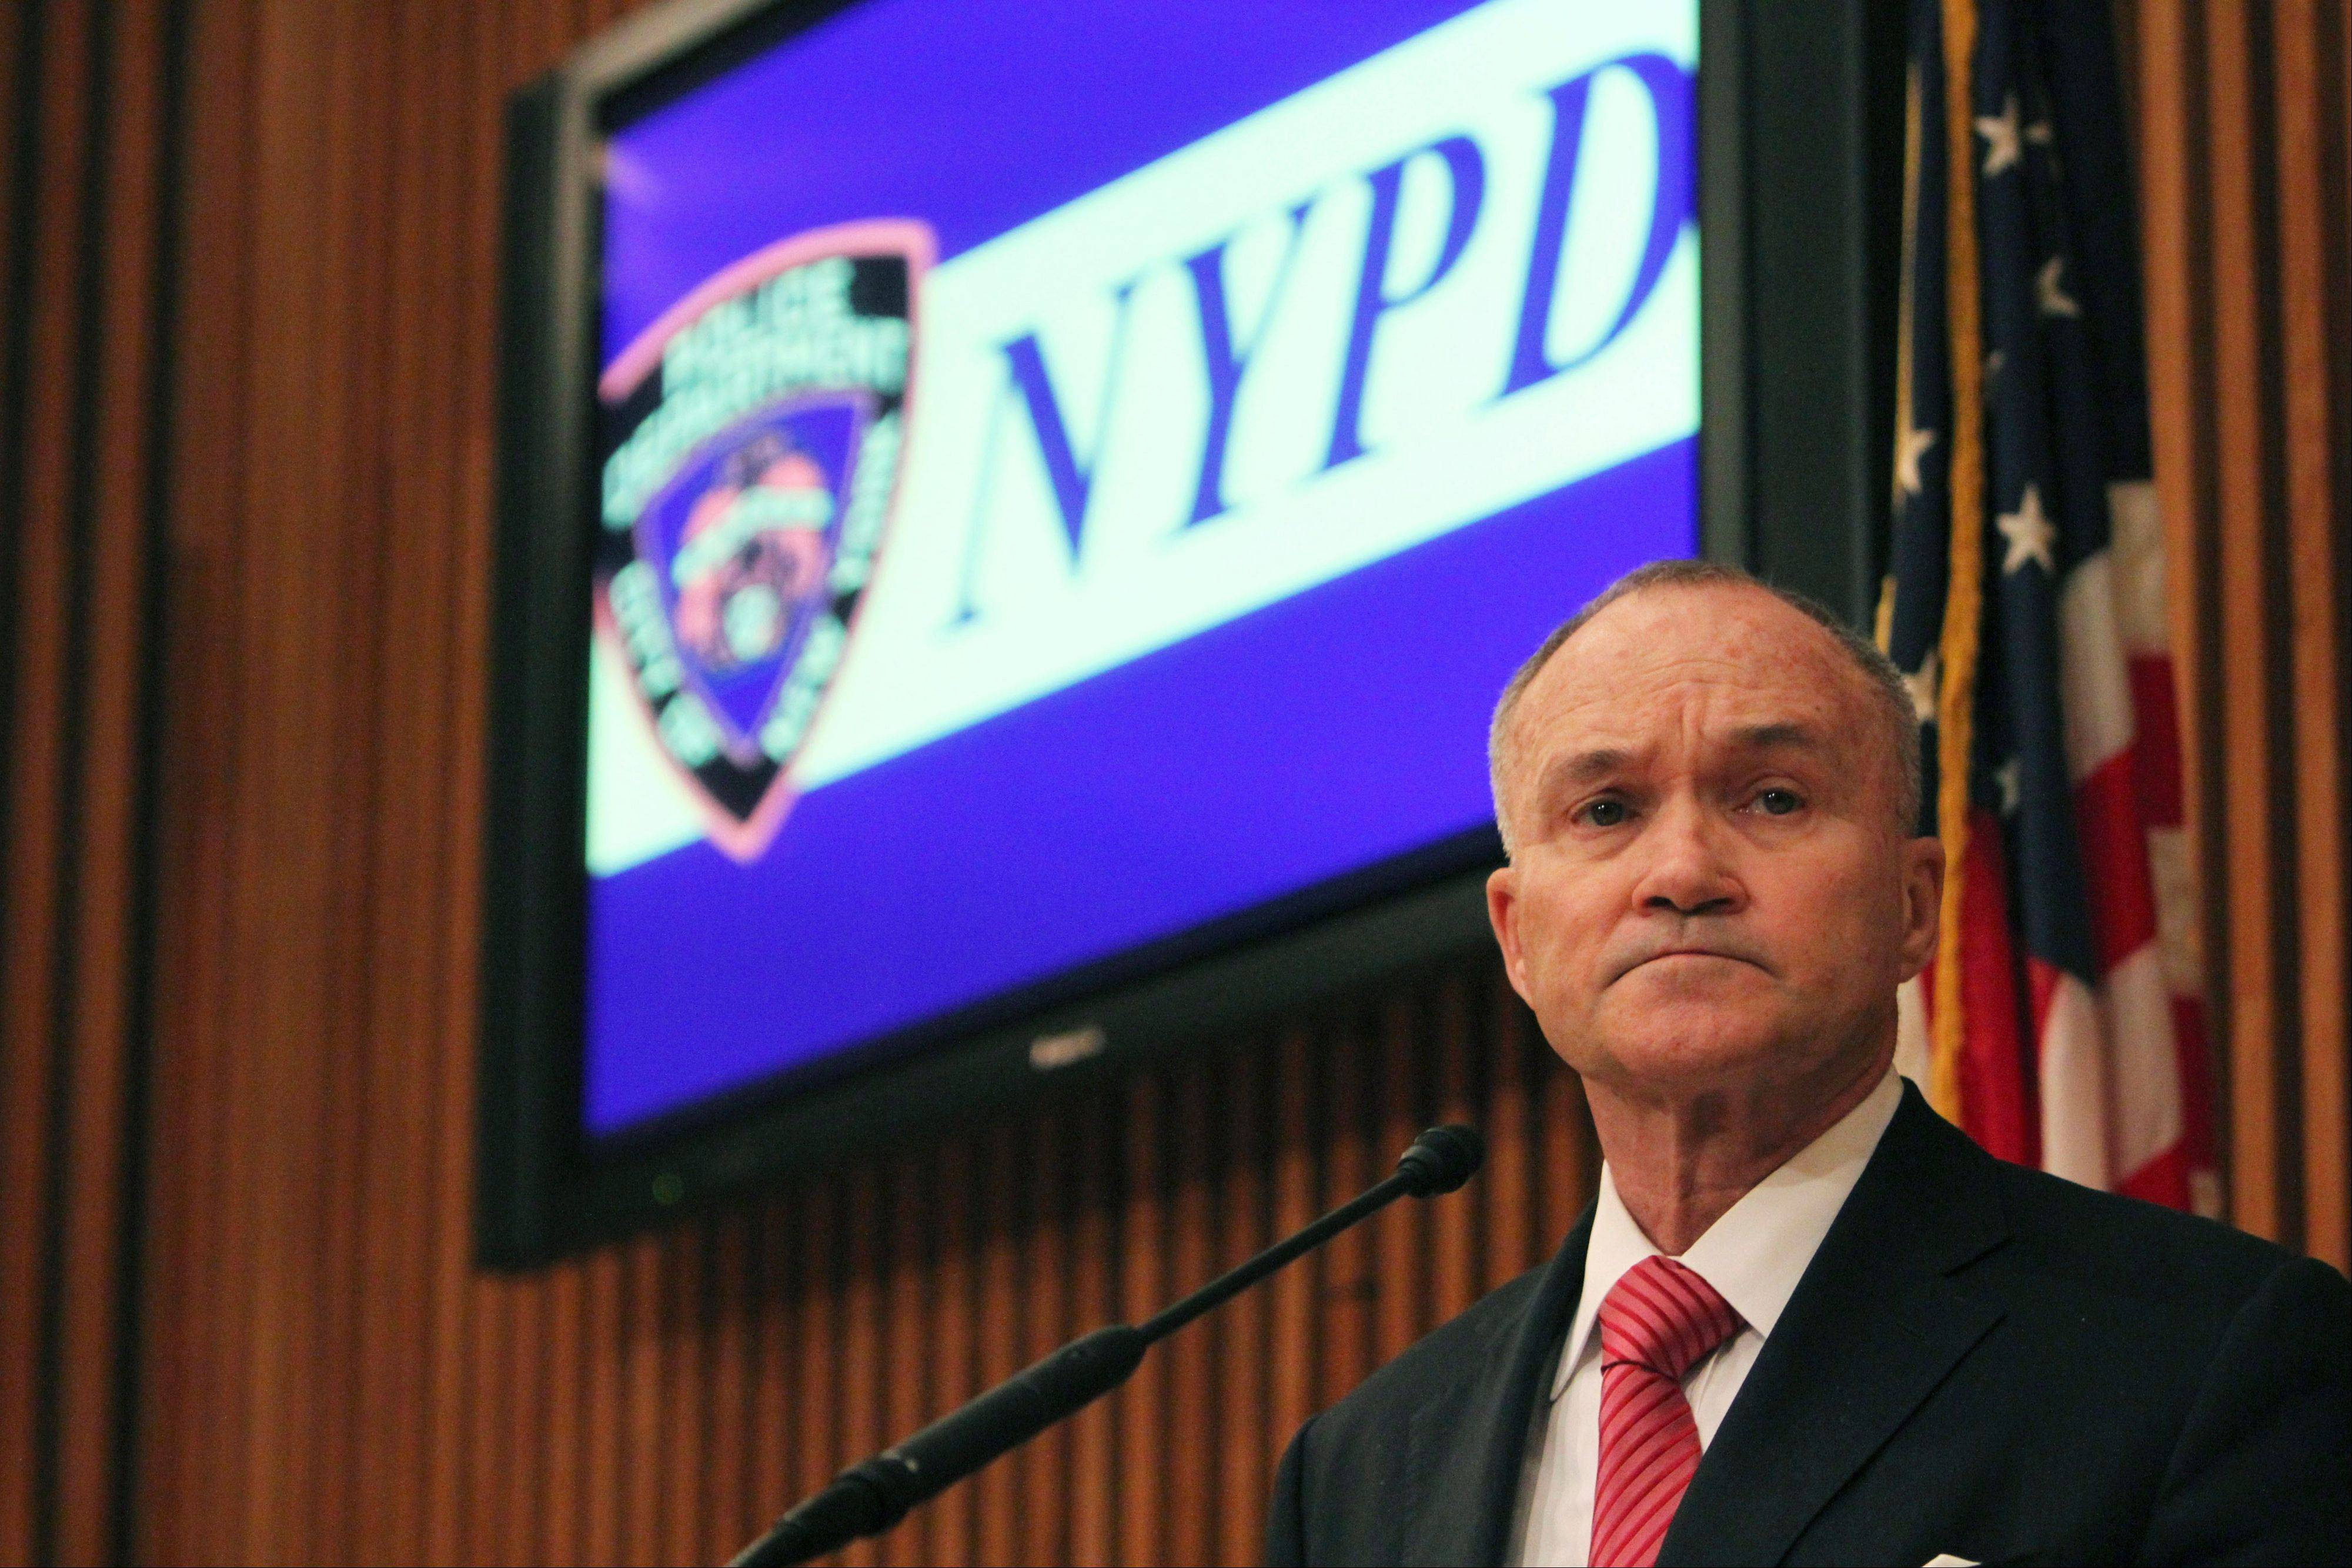 New York City Police Commissioner Raymond Kelly says the NYPD will be doubling the size of its gang unit to combat a surge in social media-fueled violence. The reinforcements will focus largely on loosely affiliated groups of teens who trade dares and insults on Facebook.